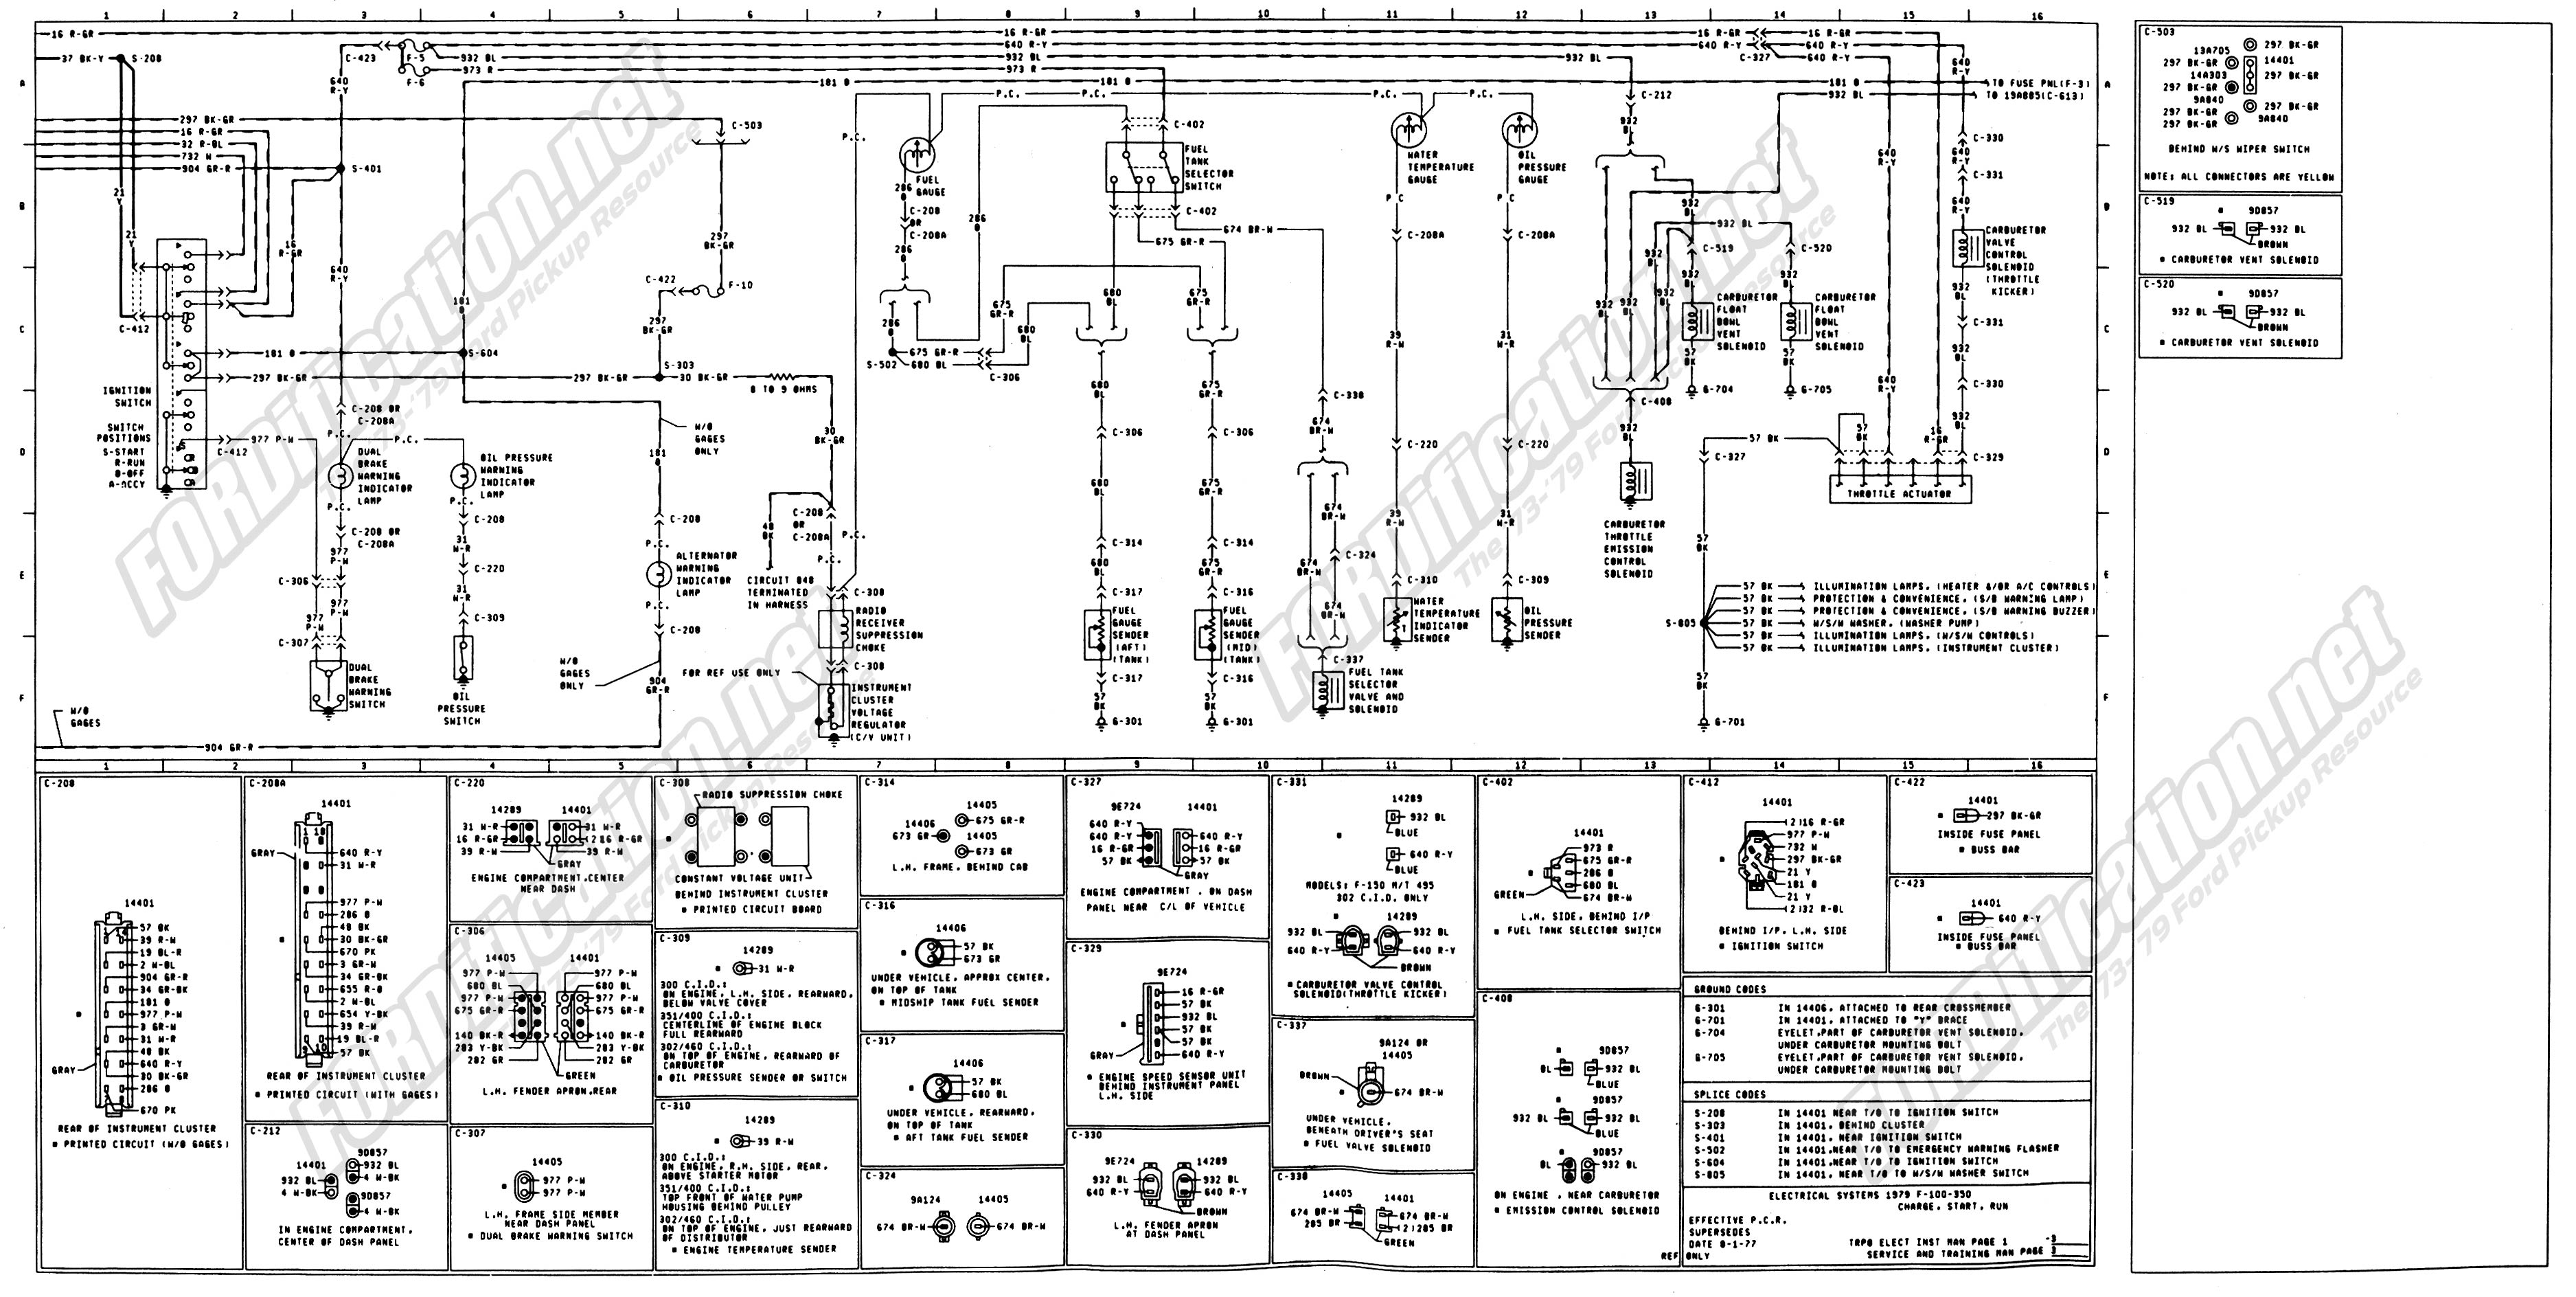 wiring_79master_3of9 1973 1979 ford truck wiring diagrams & schematics fordification net wire harness schematic for 2004 bombardier at virtualis.co